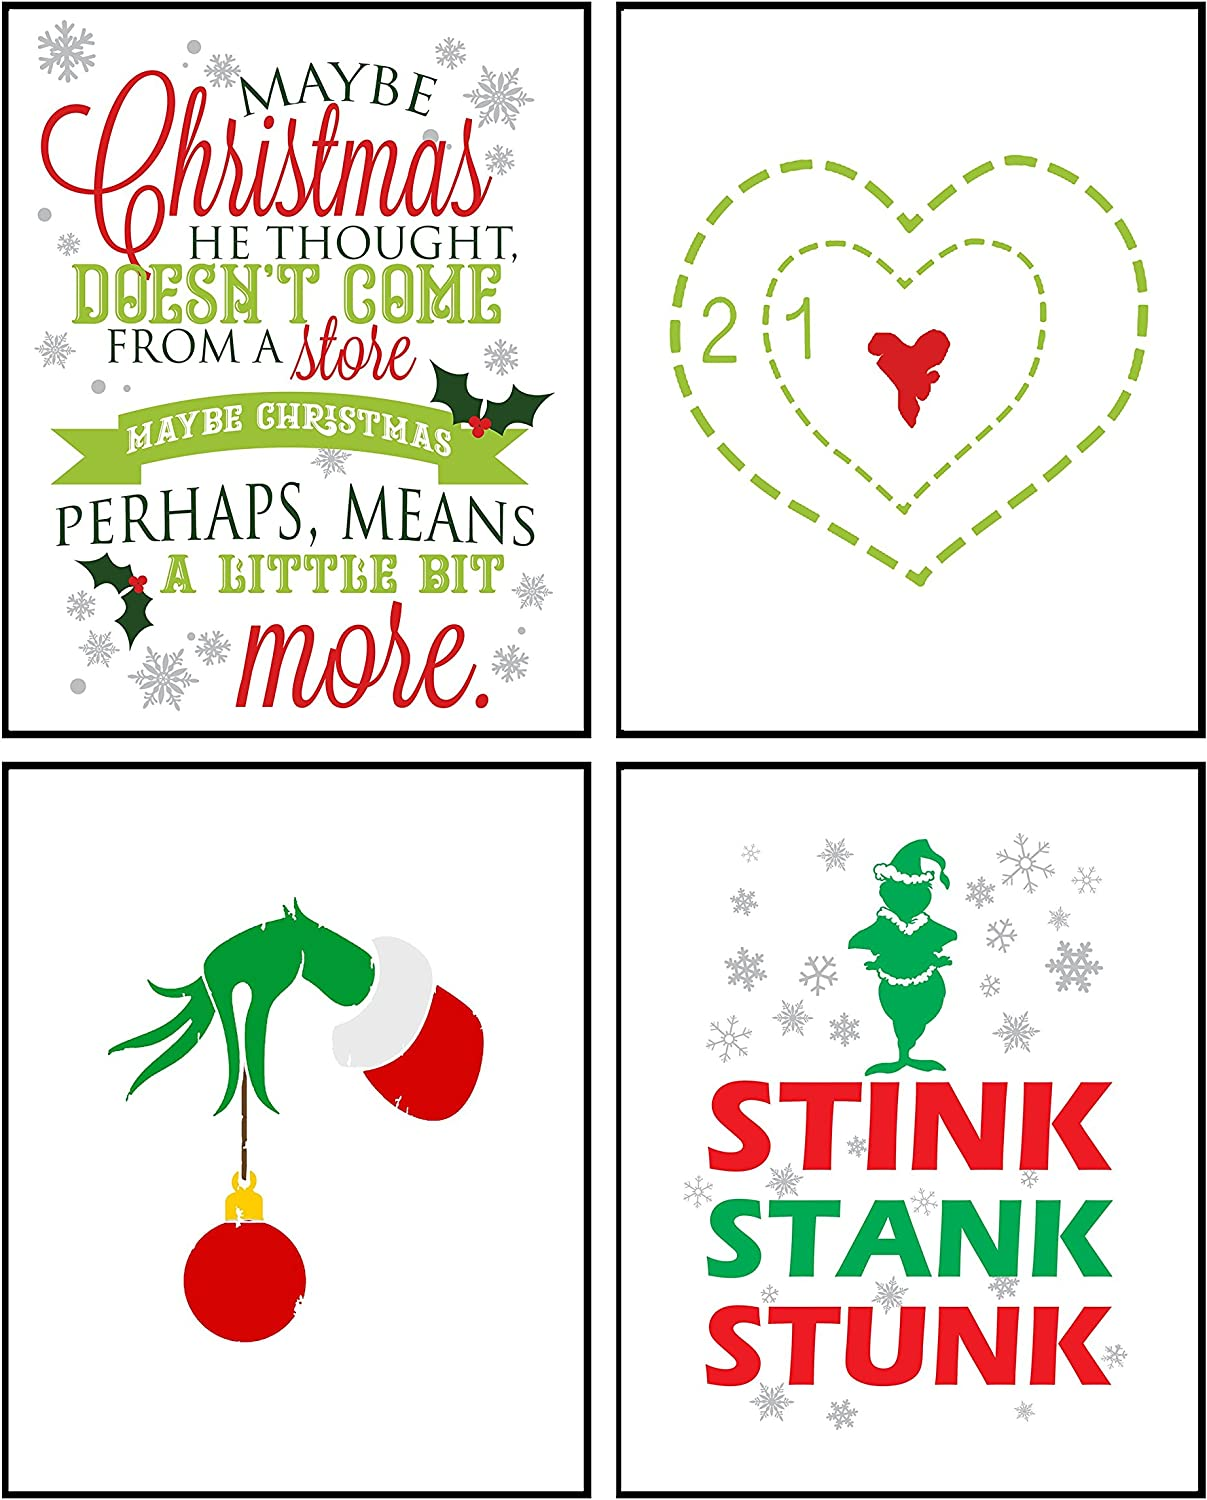 Silly Goose Gifts Stink Stank Stunk Wall Art Prints (Set of Four) 8x10in Christmas Signs Decoration Decor